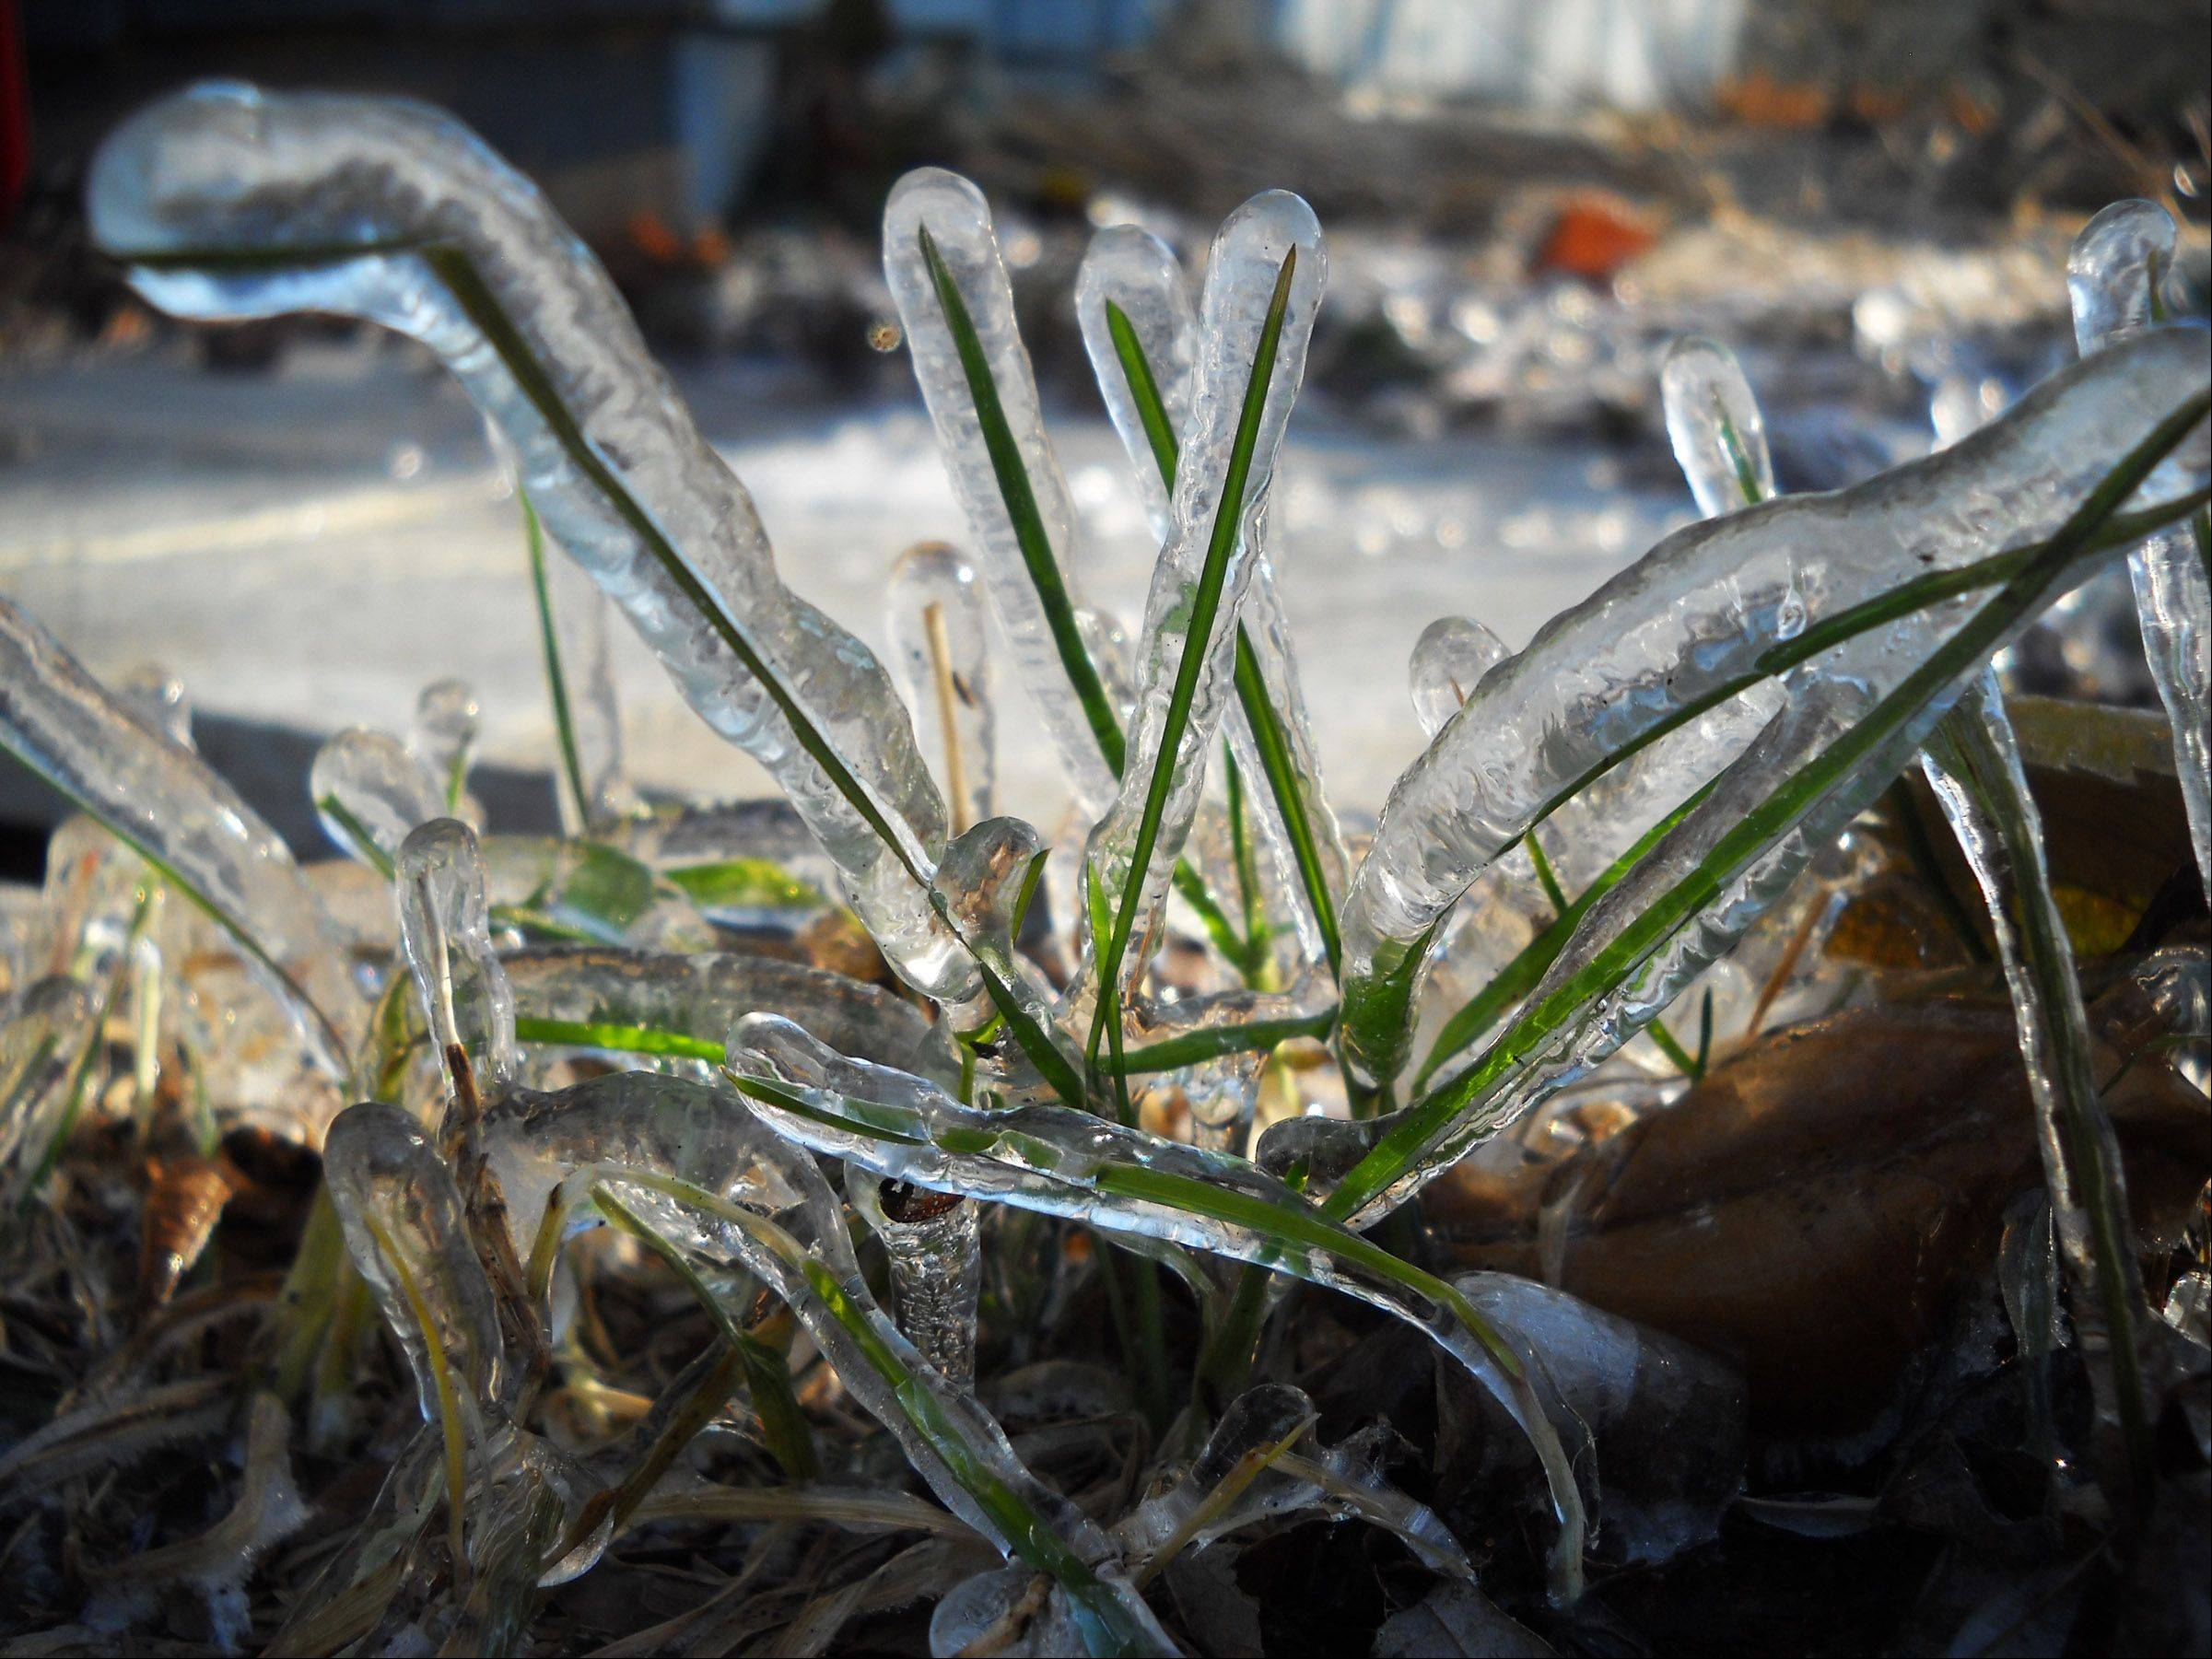 This is a photo of frozen grass by our downspout earlier this week.